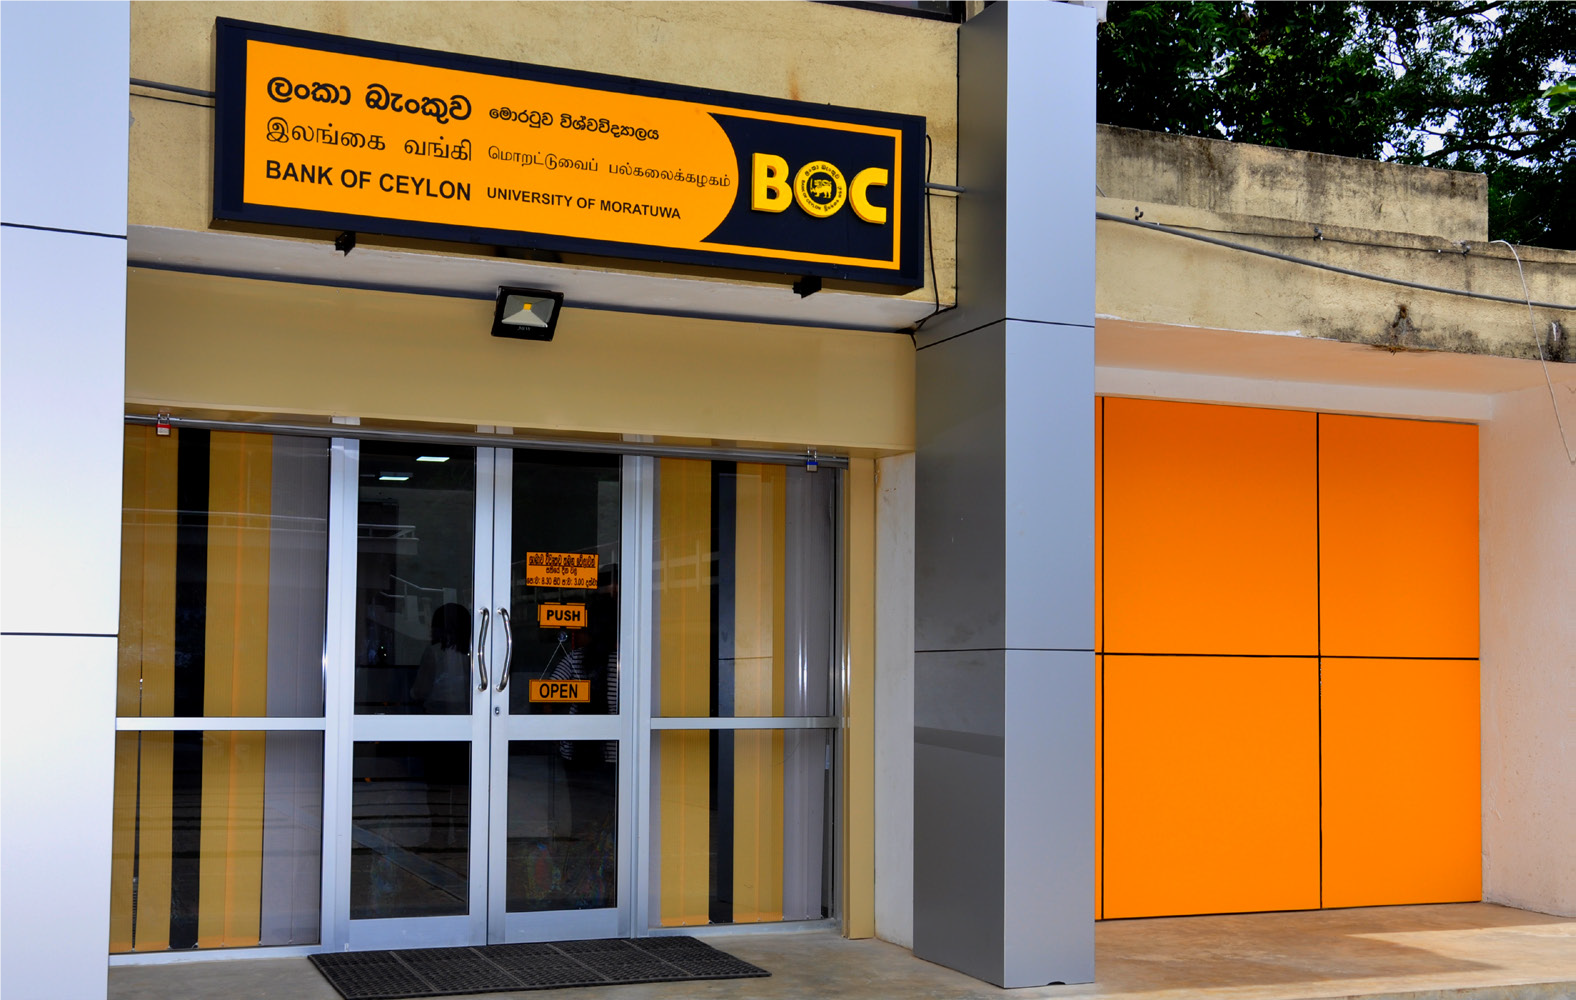 University of Moratuwa BoC Branch